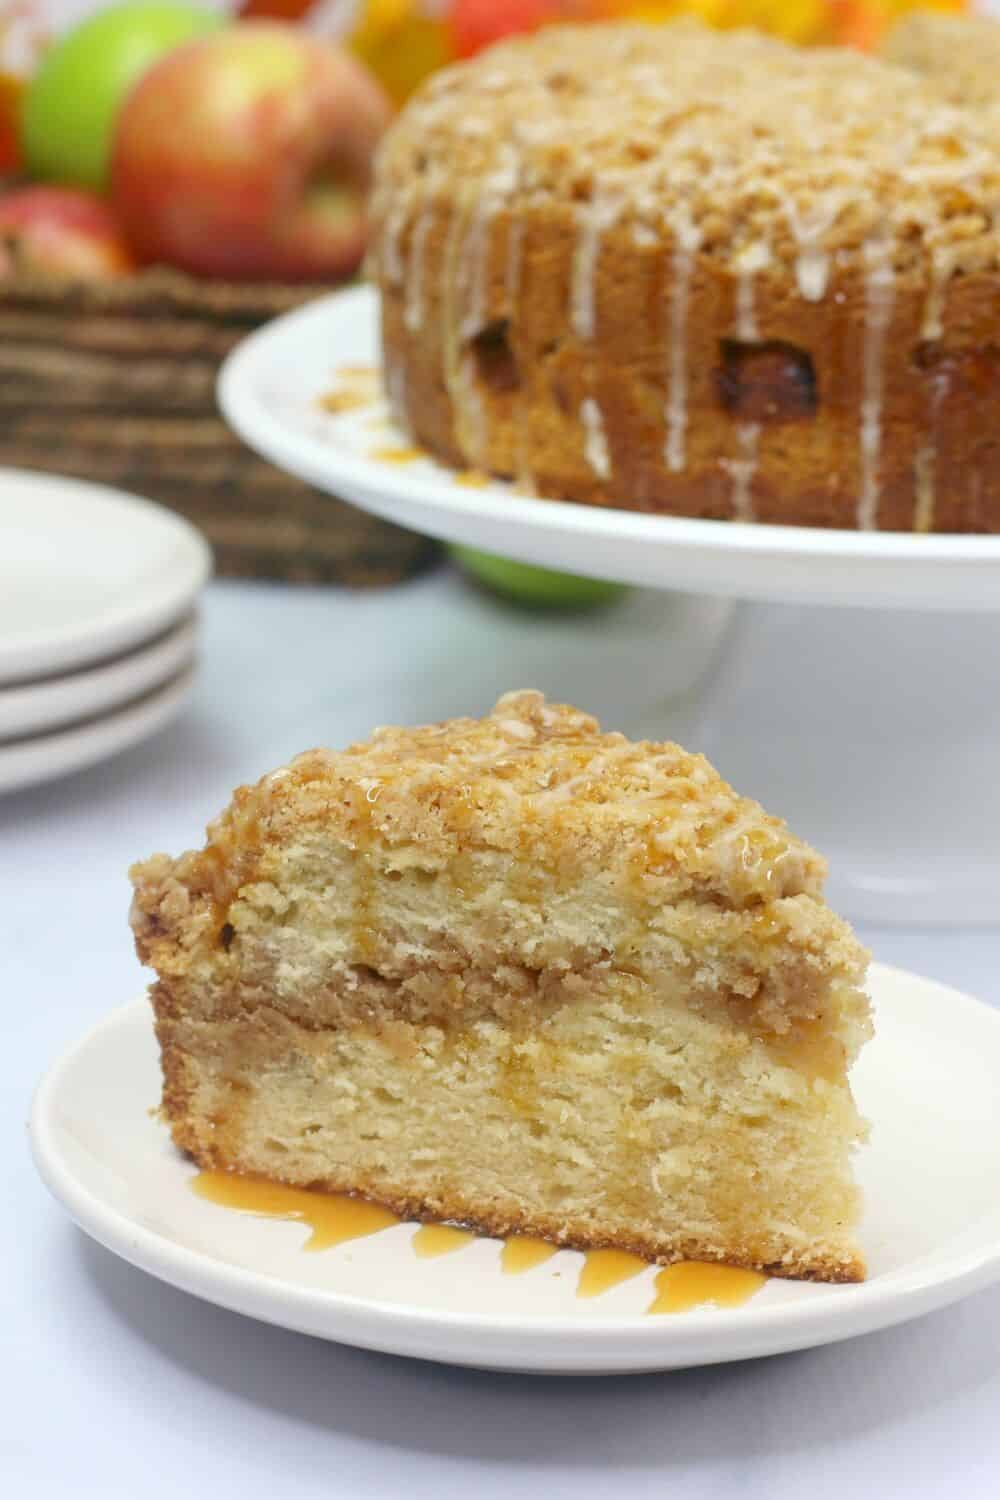 Salted Caramel Apple Cake is moist, fluffy and loaded with fresh sweet apples. It is then drizzled with a decadent salted caramel glaze. This apple cake recipe is a winner! #applecake #applecrumbcake #saltedcaramel #appledessert